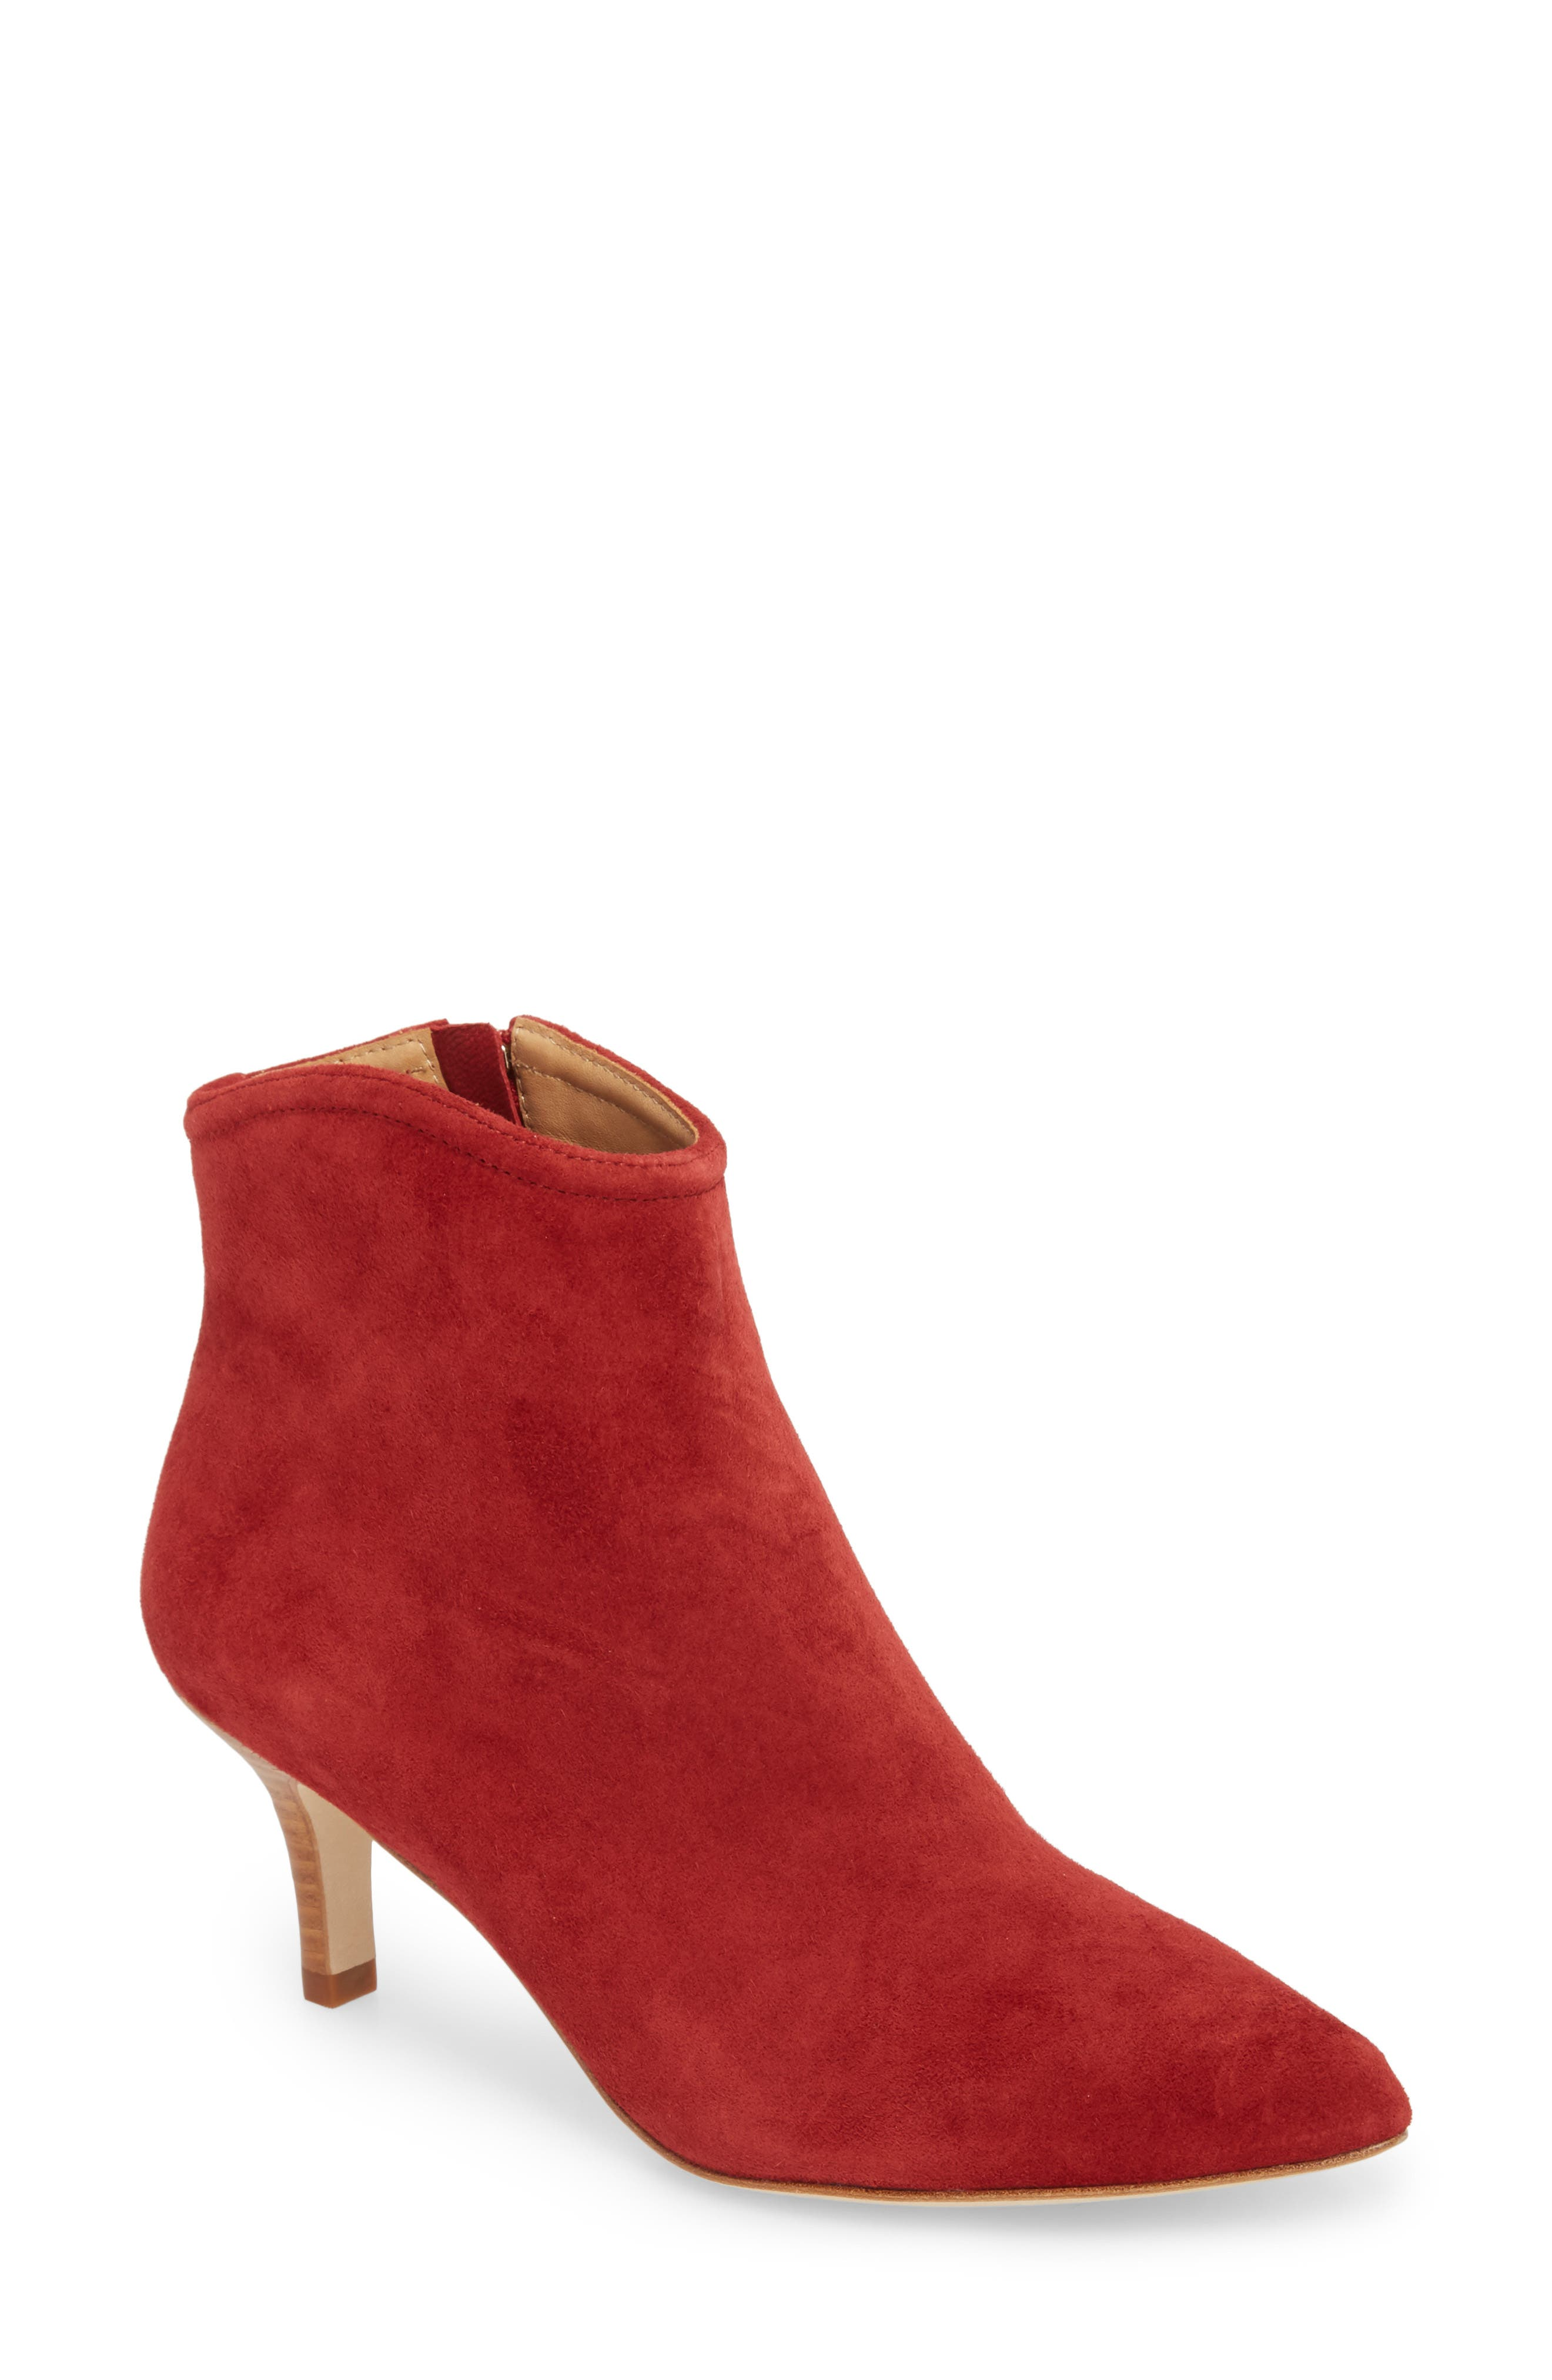 Ralean Almond Toe Bootie,                             Main thumbnail 1, color,                             Currant